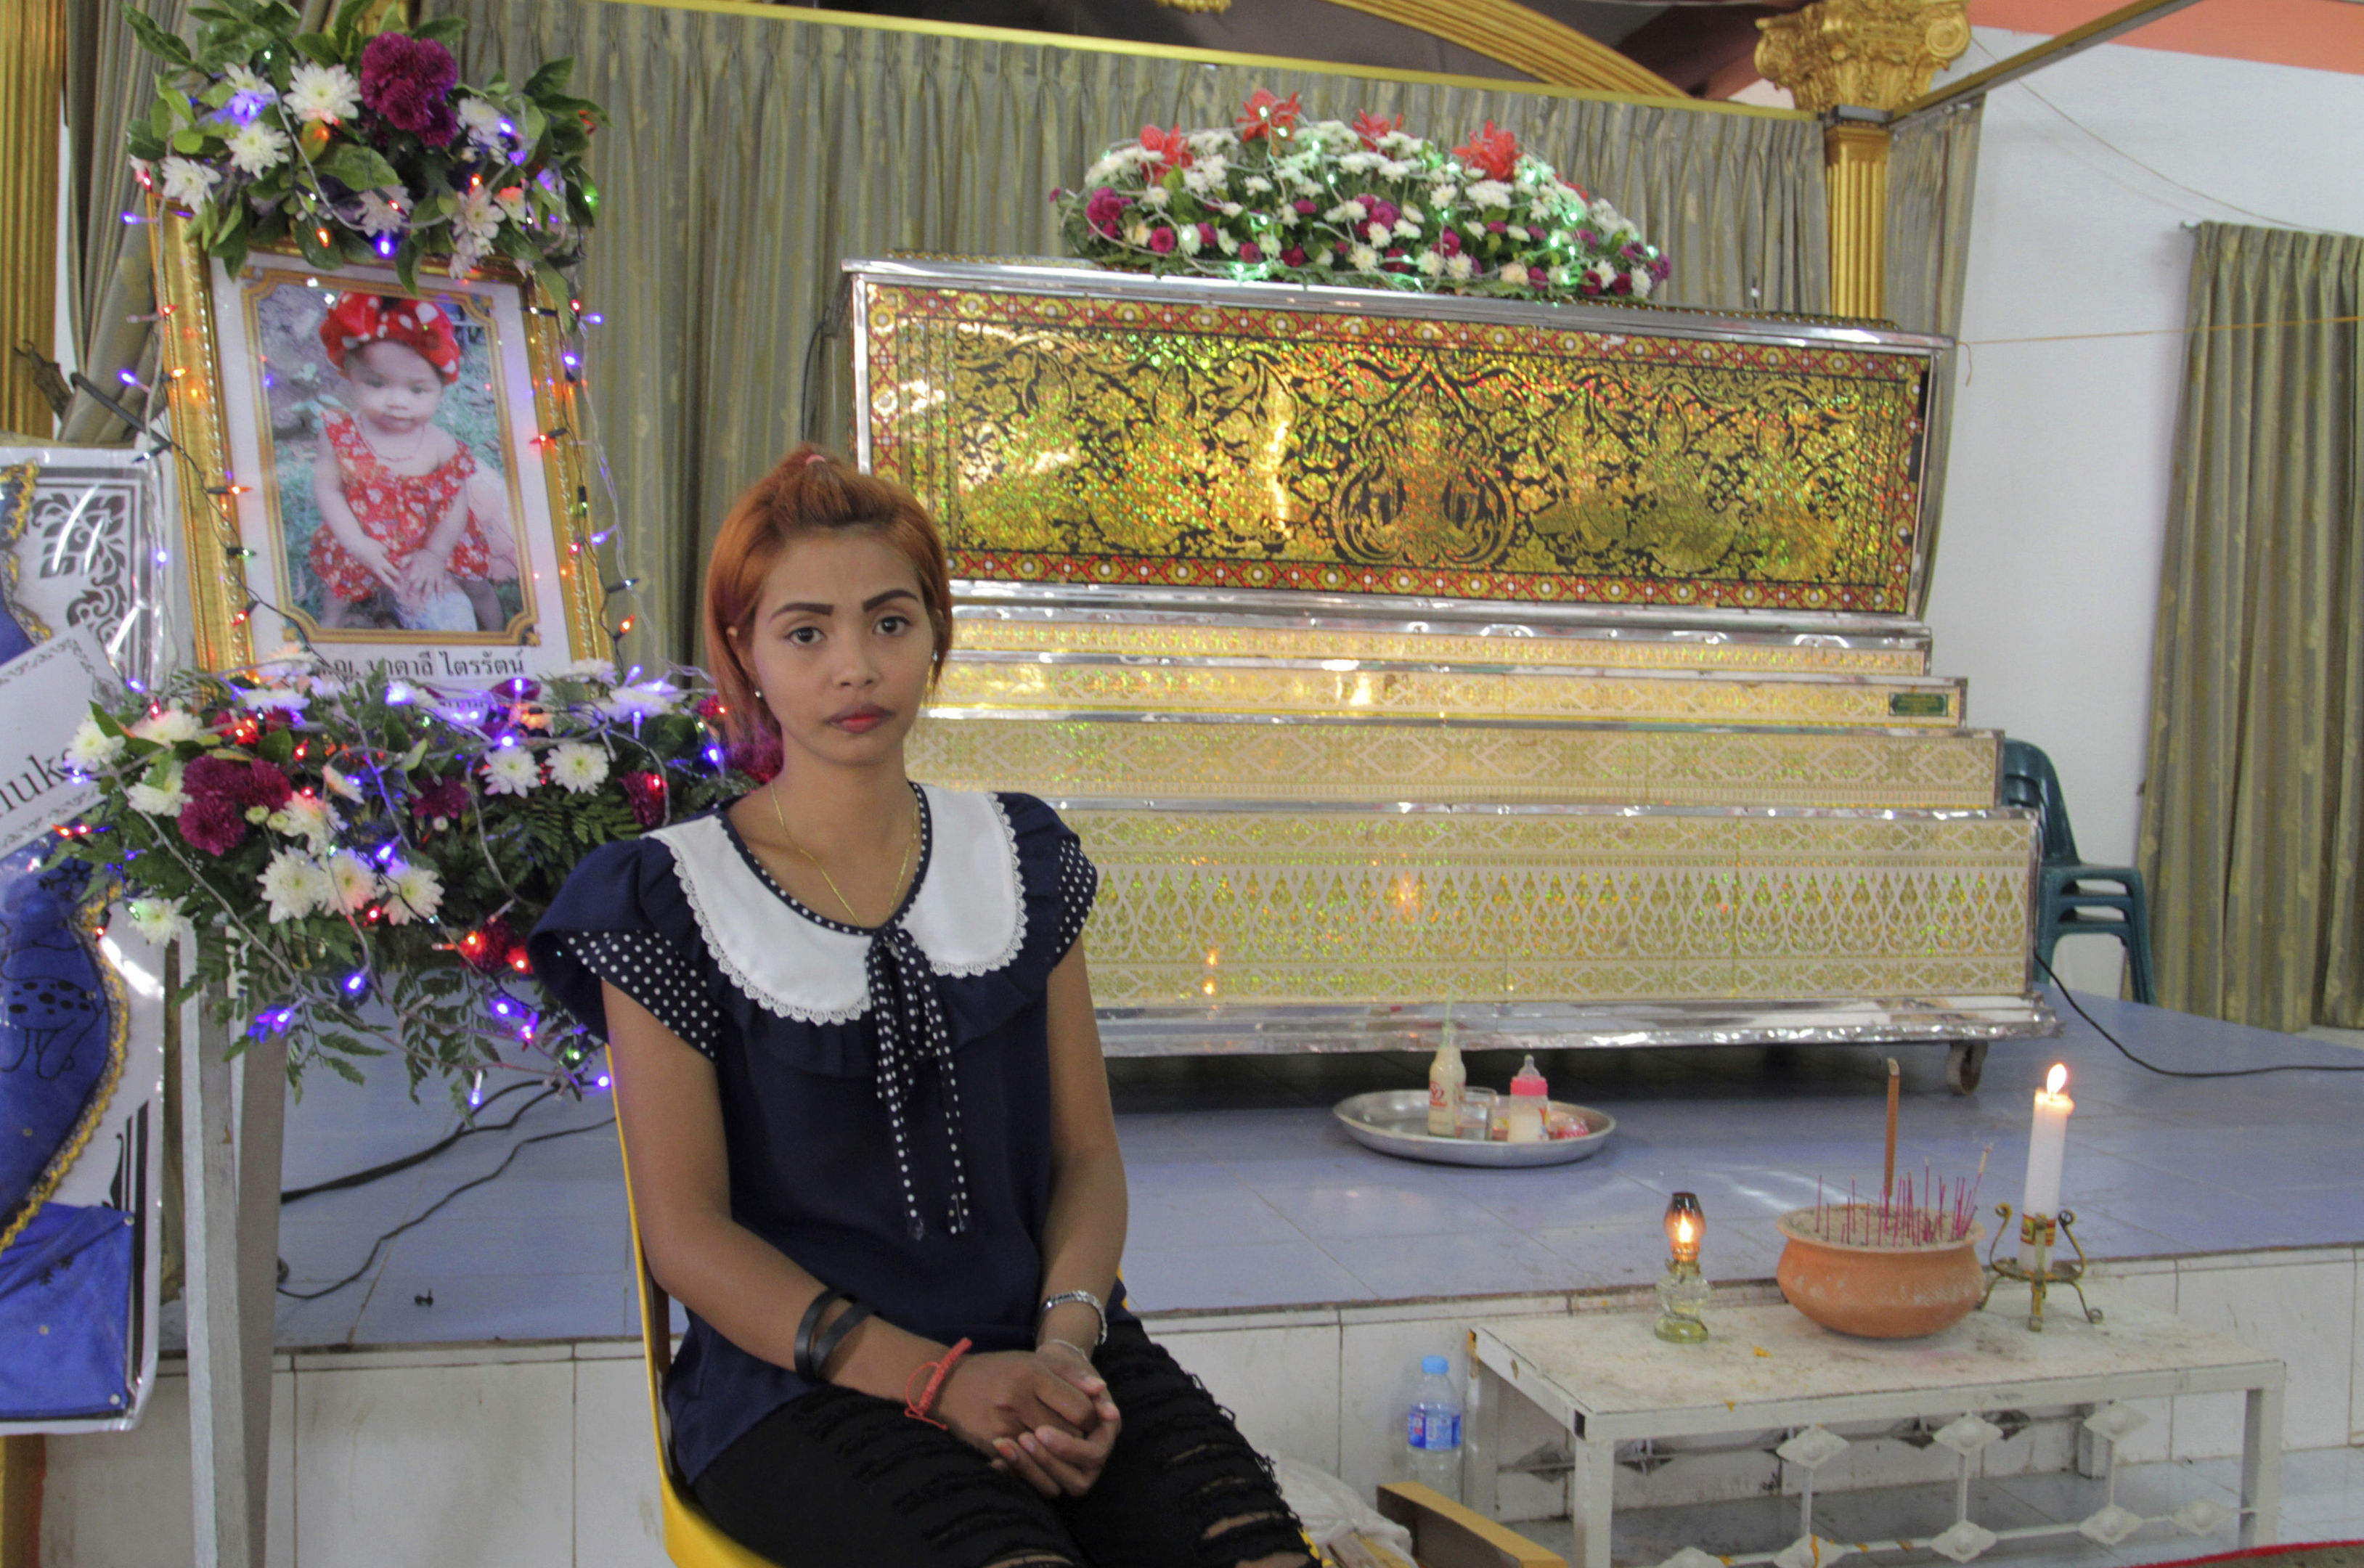 Chiranut Trairat, mother of an 11-month-old baby girl, sits in front of her daughter's coffin